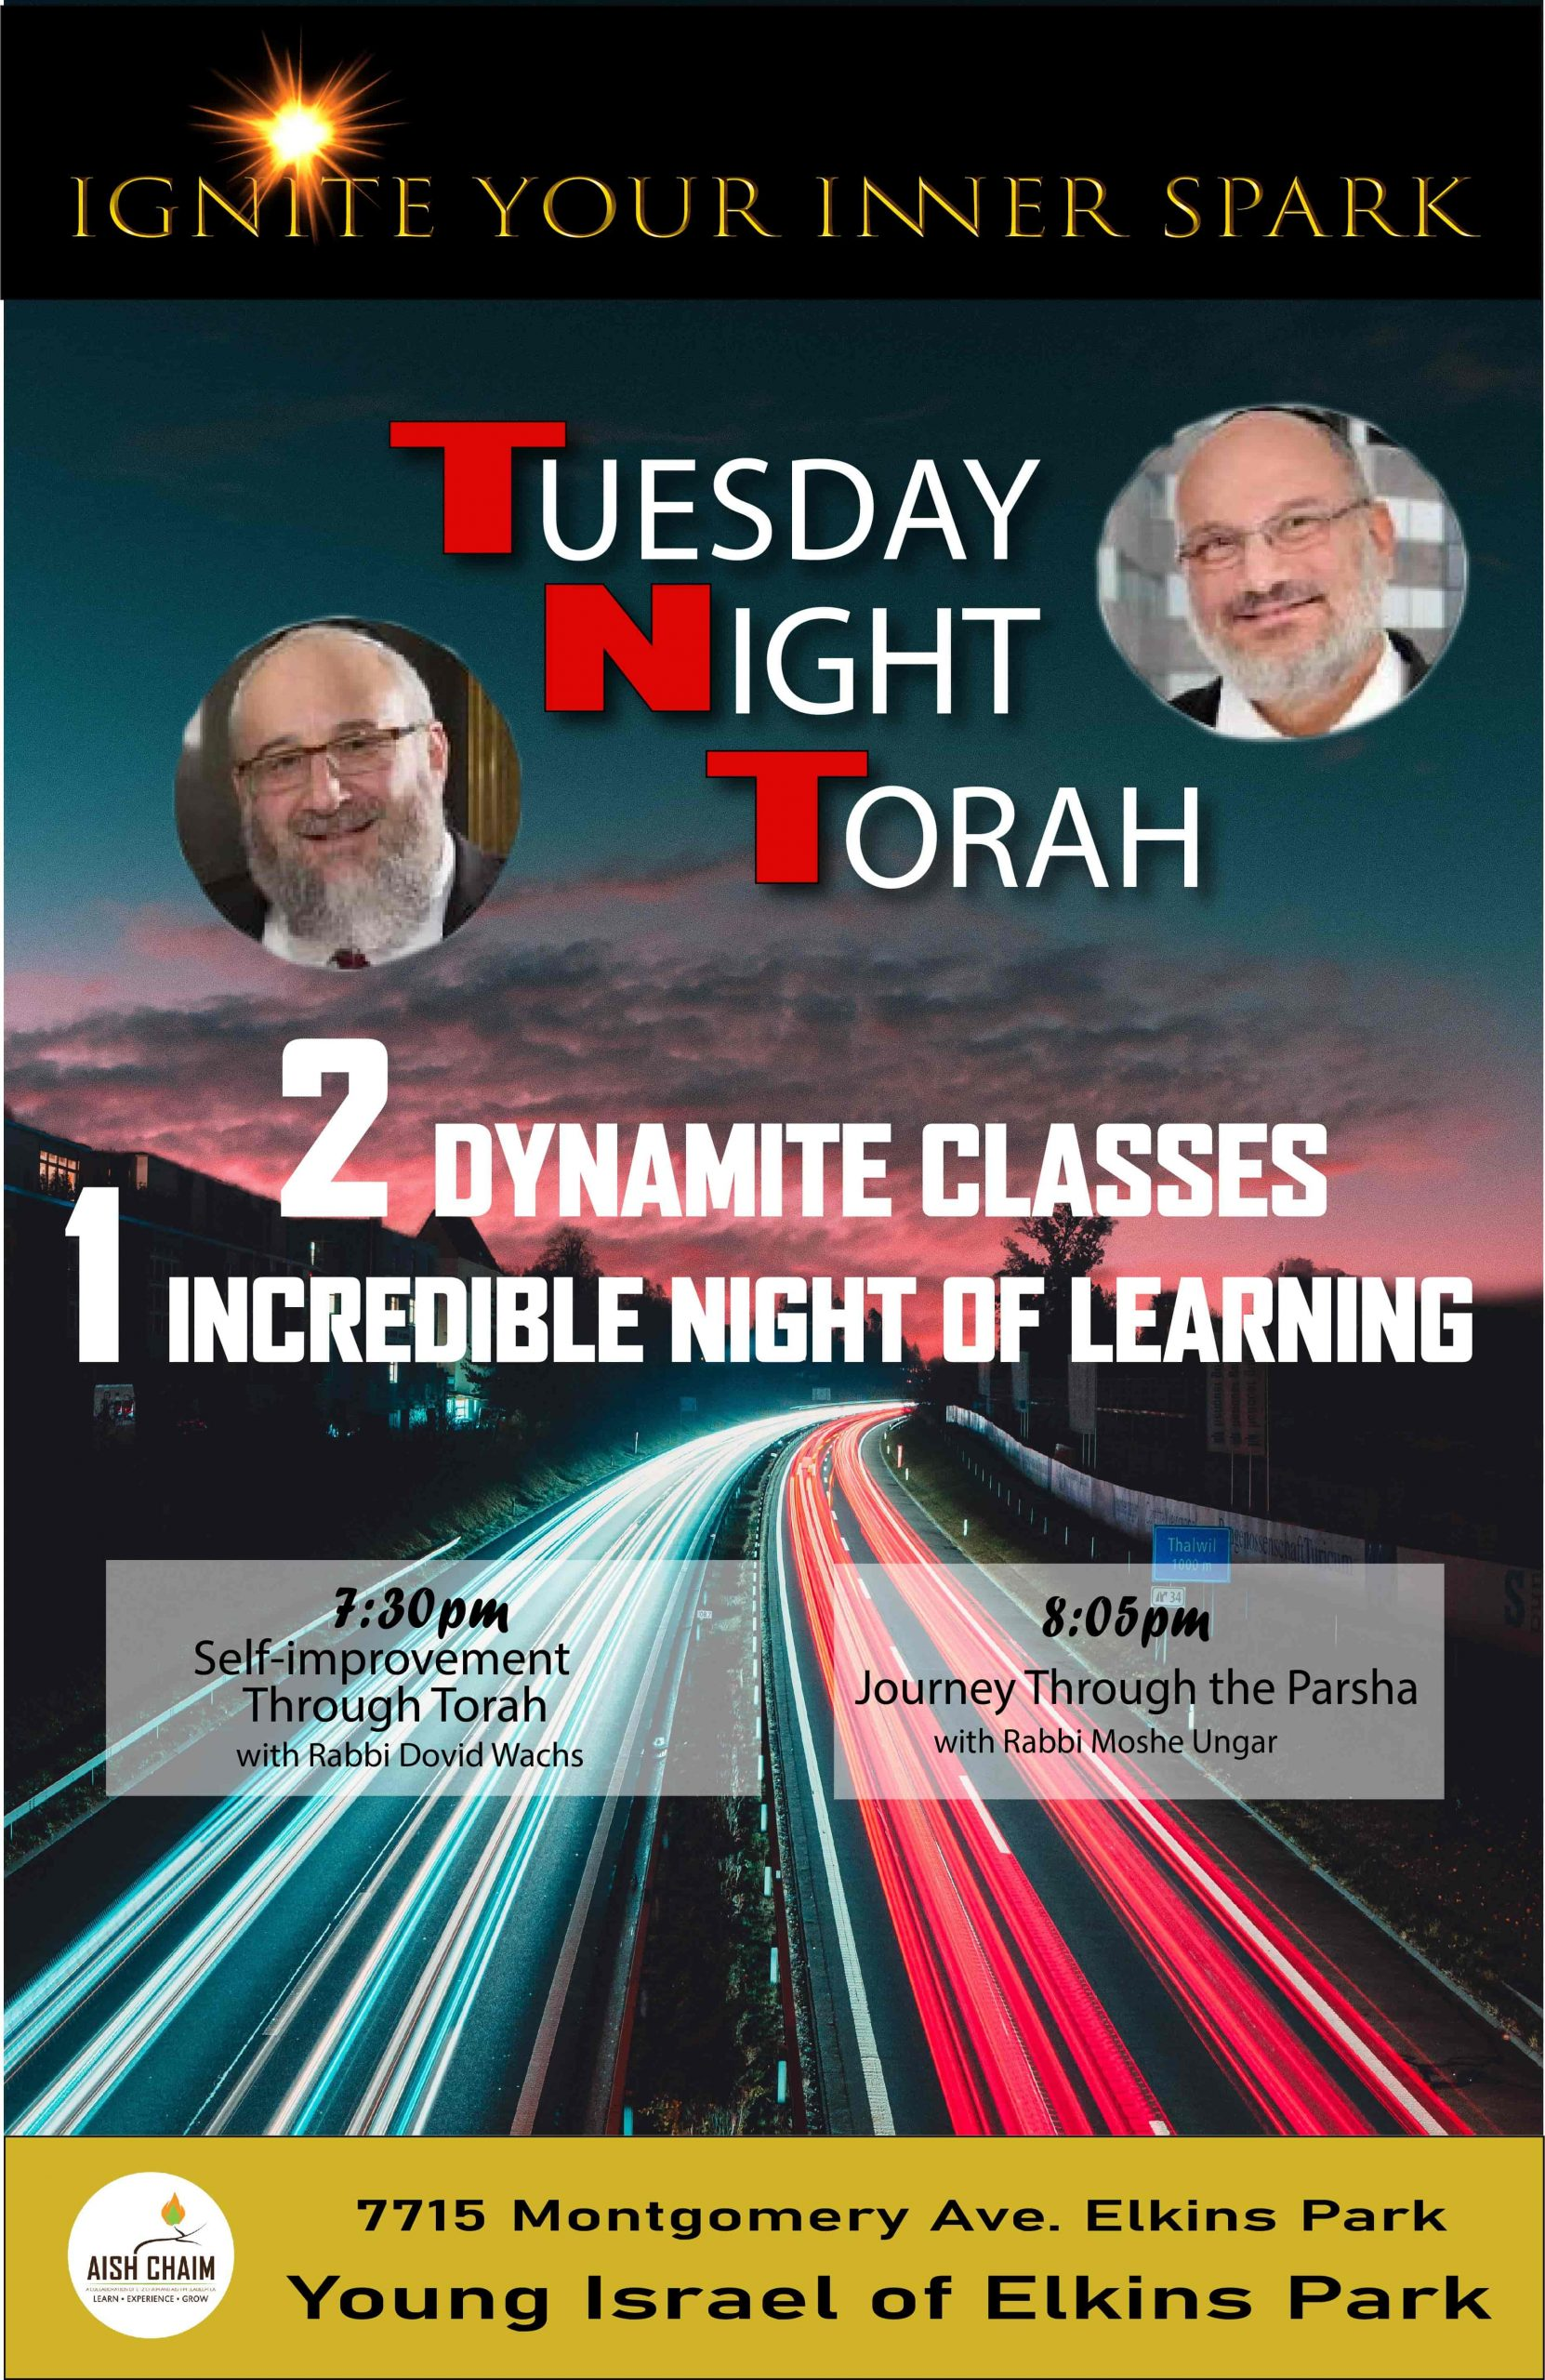 Poster advertising a Tuesday Night Class